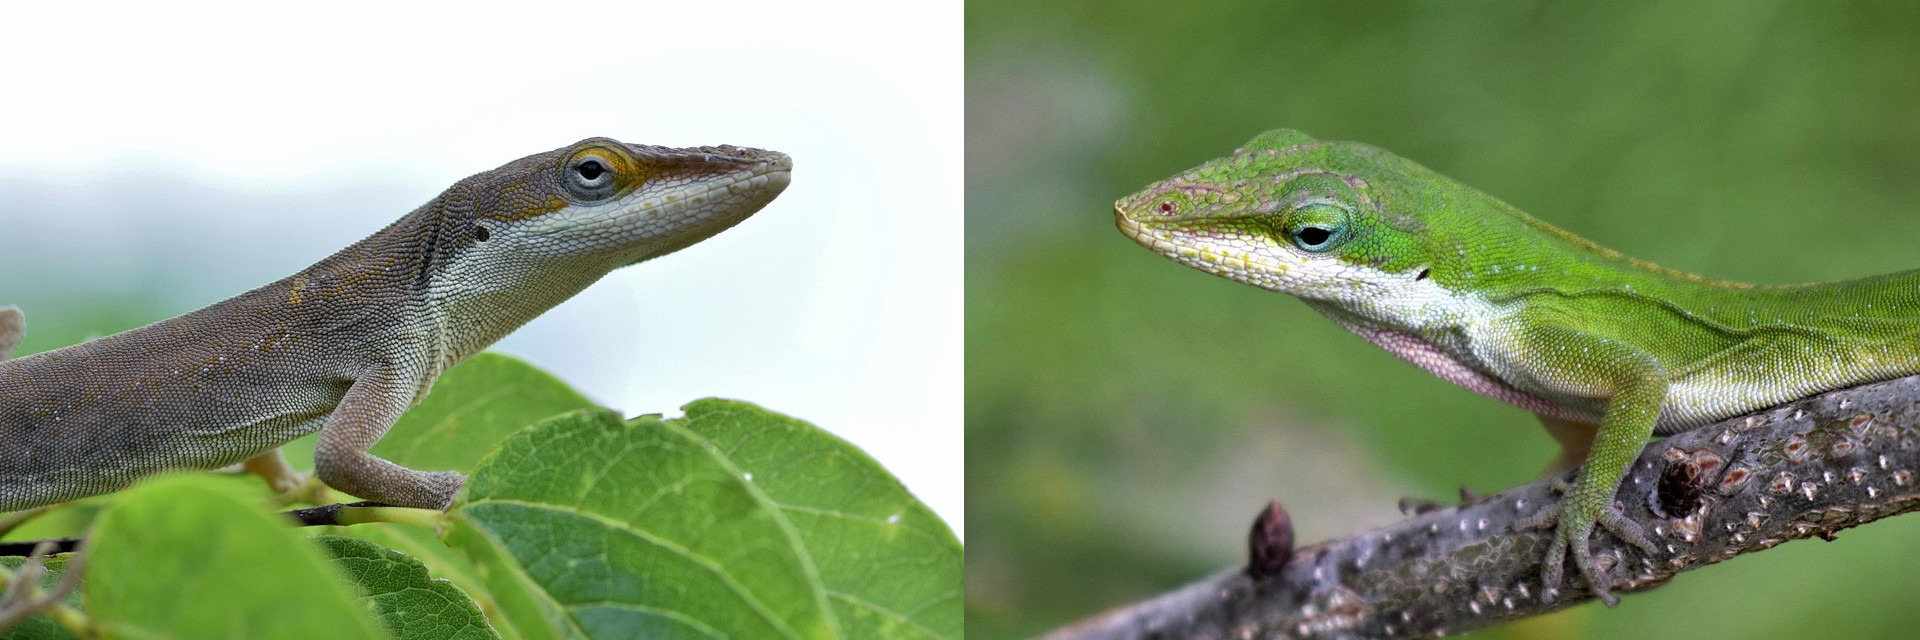 Carolina Anoles Green and Brown Color Morphs